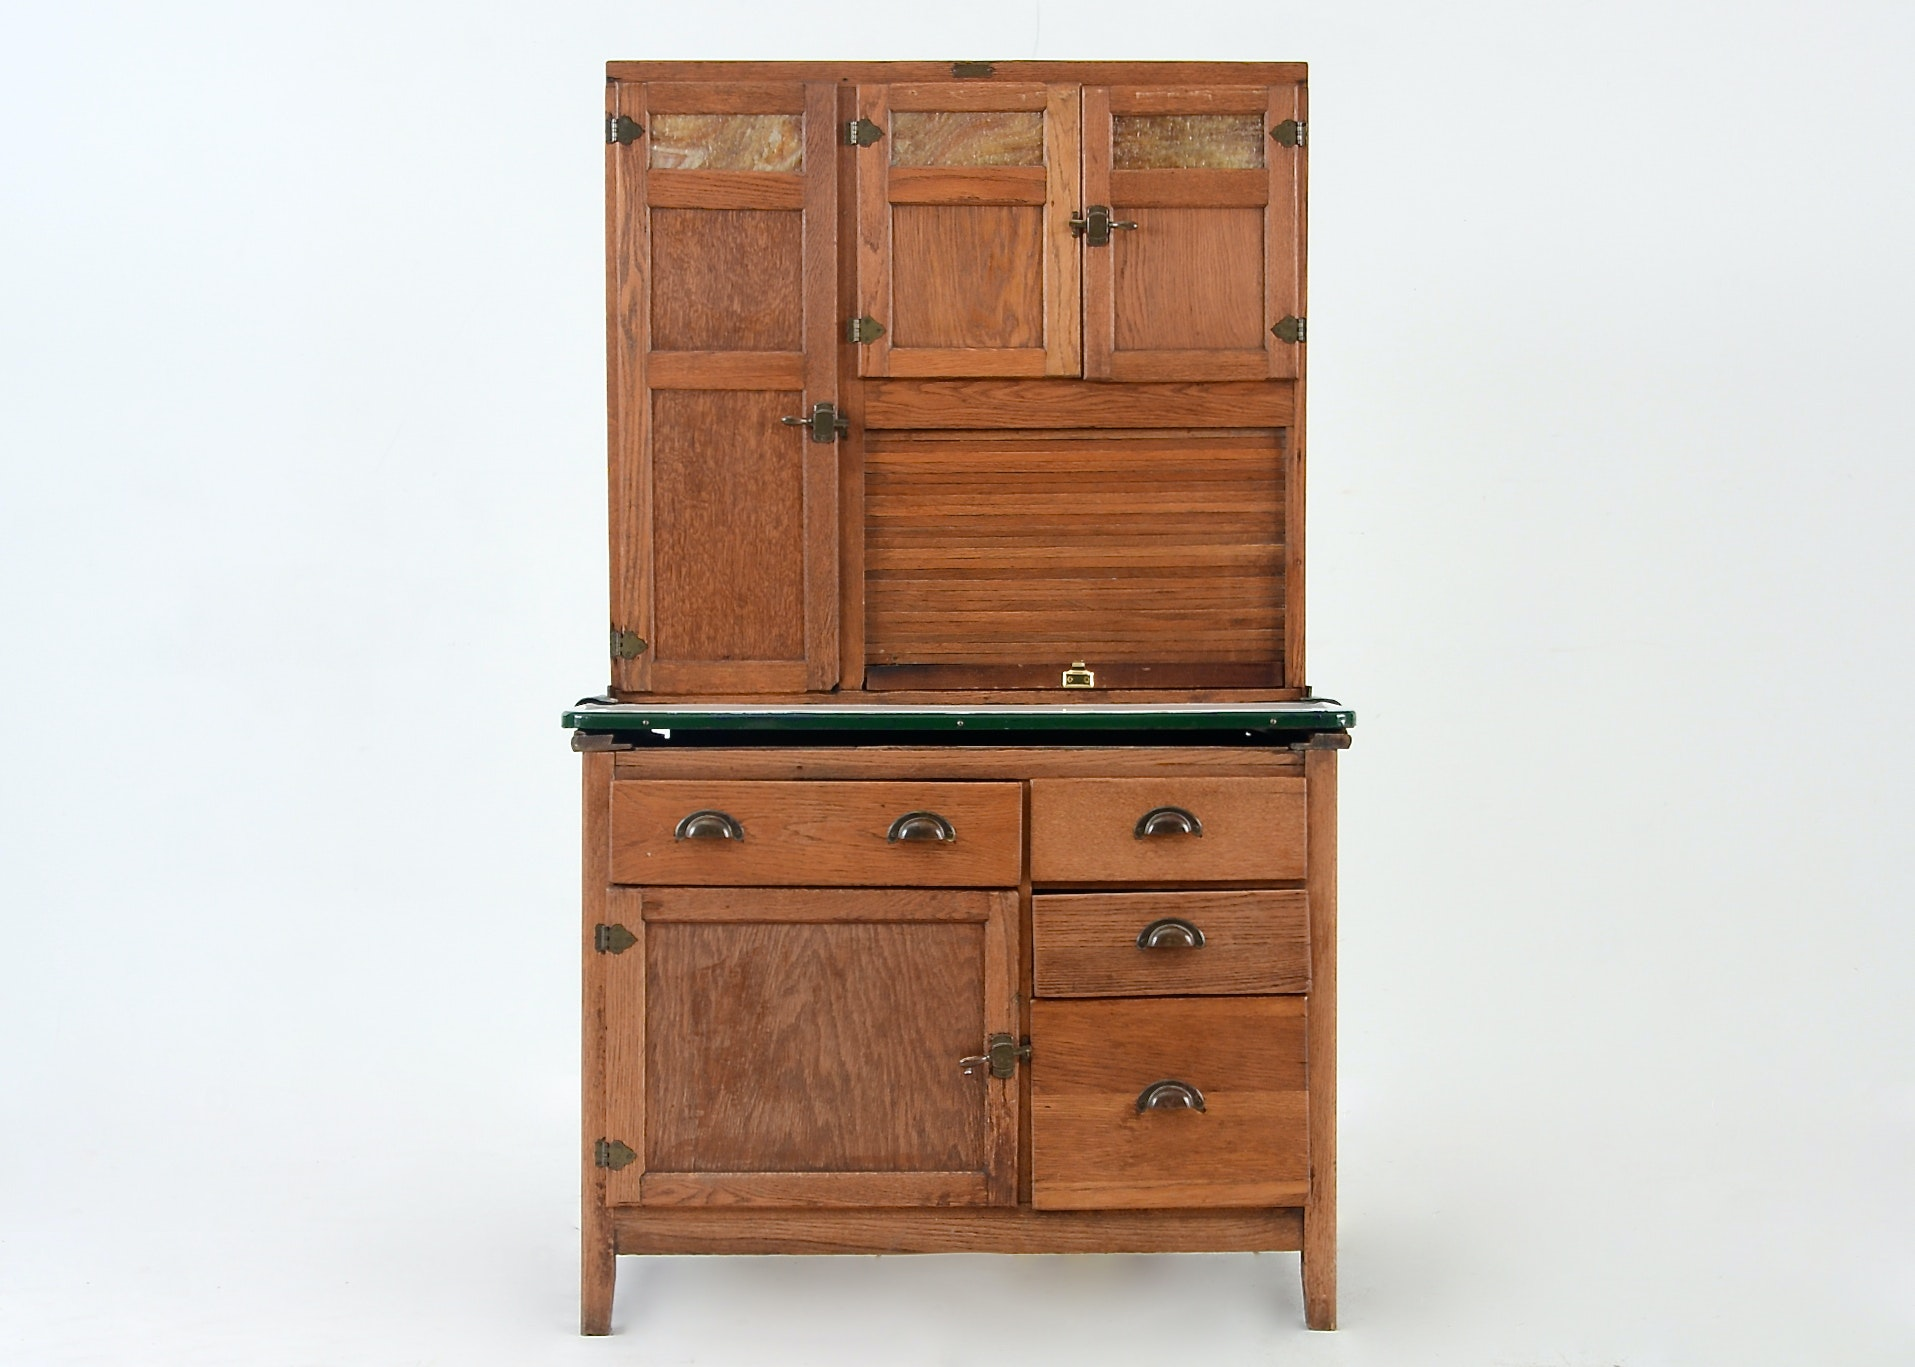 Merveilleux Oak Hoosier Cabinet By Wilson Kitchen Cabinets ...